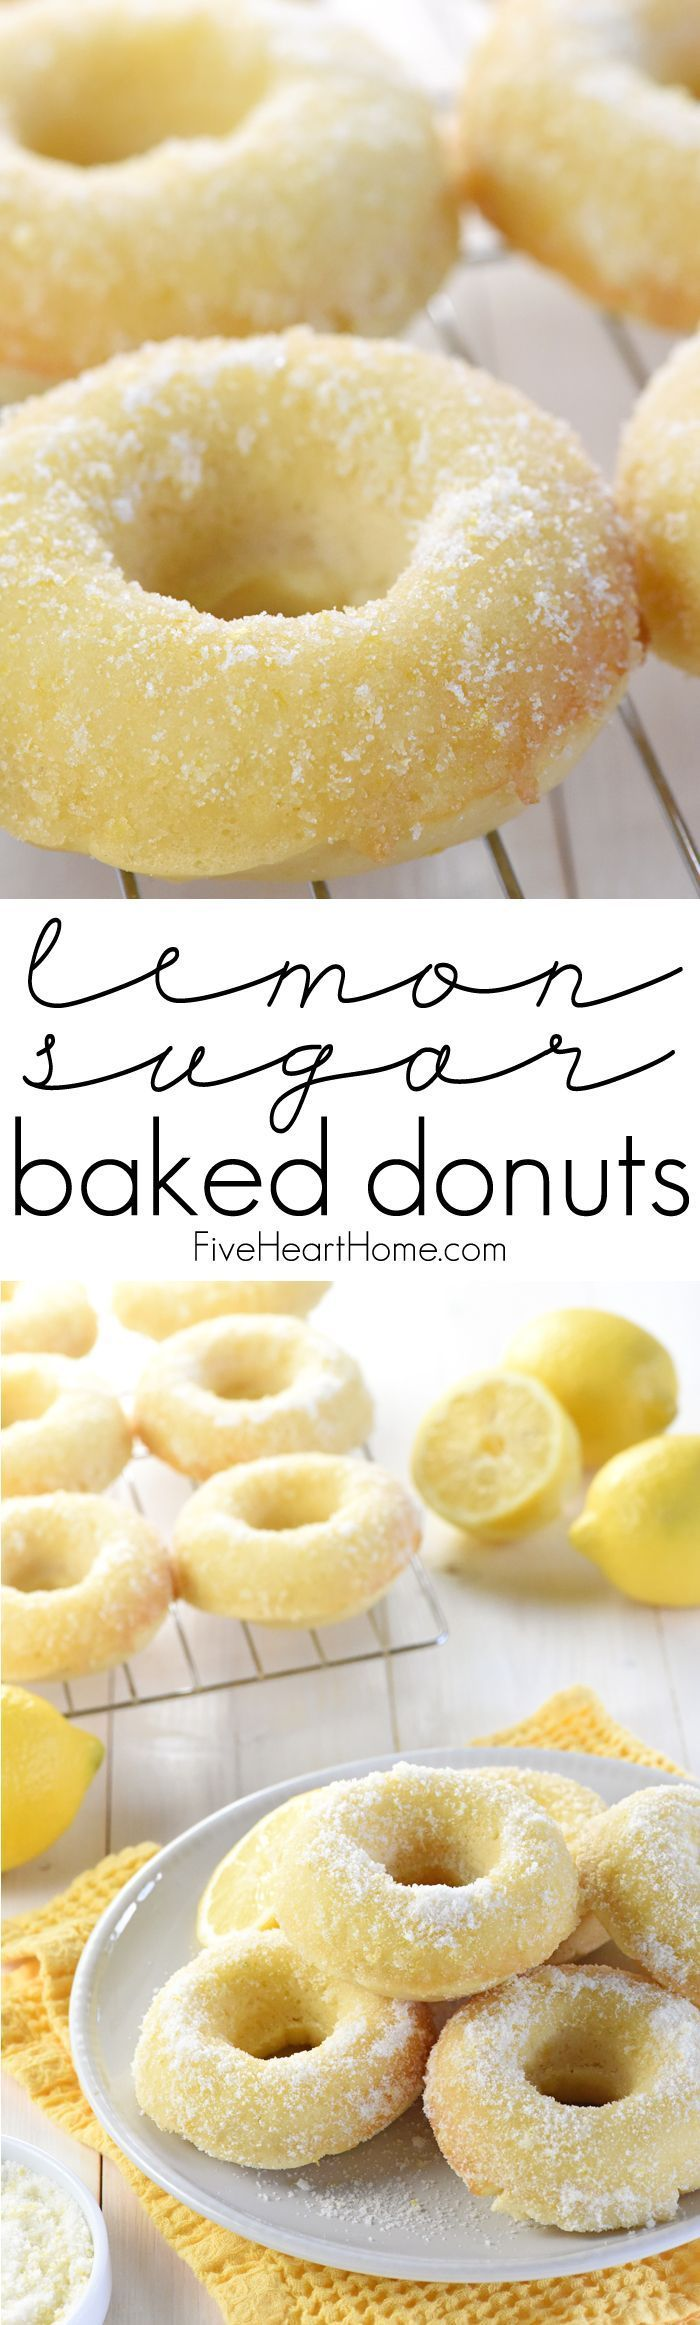 Lemon Sugar Baked Donuts ~ light, citrusy, and generously coated in a crunchy, lemon-zest infused sugar...the perfect sunny treat for breakfast or dessert! | http://FiveHeartHome.com